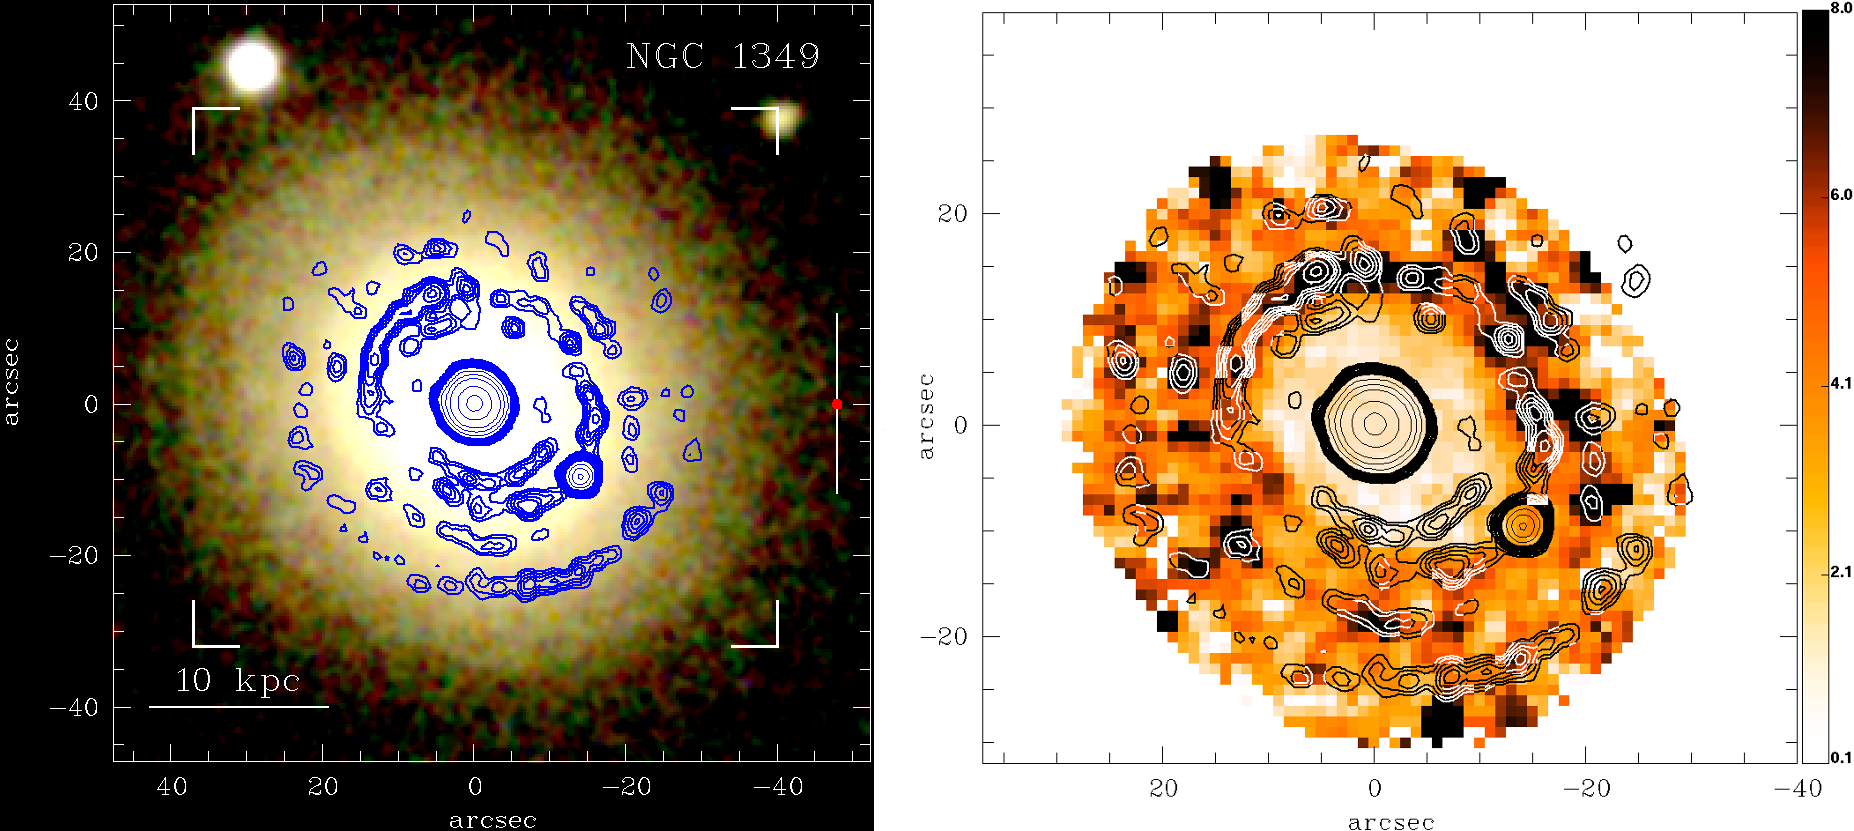 """Figure 2: True colour image of galaxy NGC1349, overlaid with contours depicting the spiral-like star-forming regions (left). """"Intensity"""" of the Equivalent Width in H-alpha in galaxy NGC1349, overlaid with contours depicting the spiral-like star-forming regions. Illustration credits: Gomes et al. (2016)."""